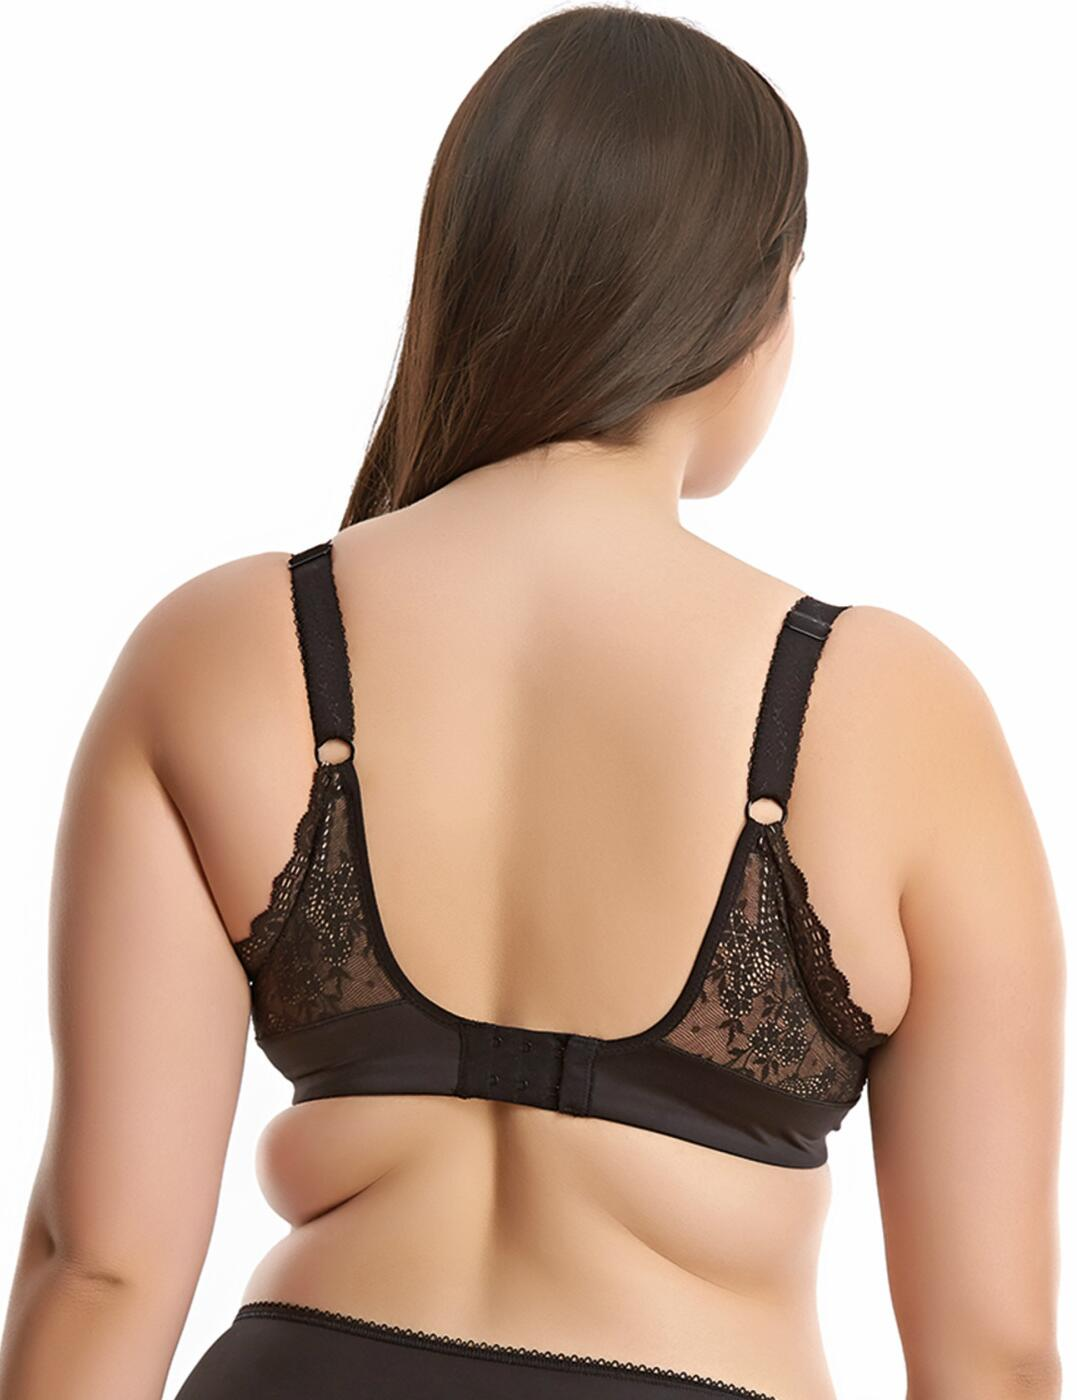 Elomi-Tia-Full-Coverage-Bra-4280-Underwired-Bandless-Supportive-Womens-Lingerie thumbnail 6